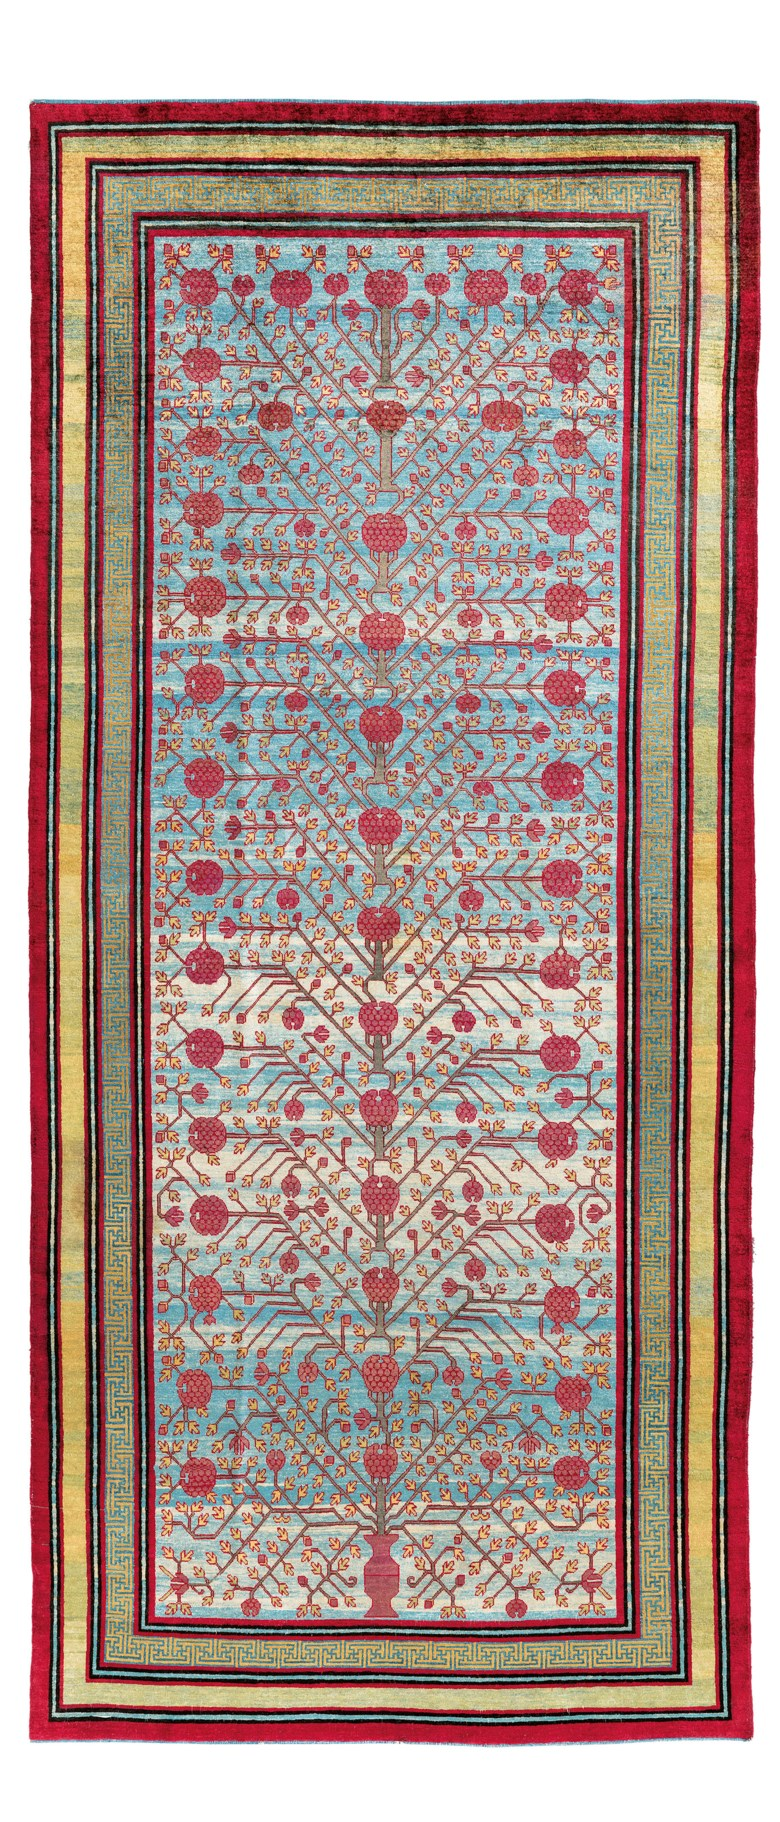 A silk Yarkand carpet, east Turkestan, first half 19th century. 11 ft 8 in x 5 ft 1 in (359 cm x 154 cm). Estimate £50,000-70,000. Offered in Art of the Islamic and Indian Worlds Including Oriental Rugs and Carpets on 2 April 2020 at Christie's in London